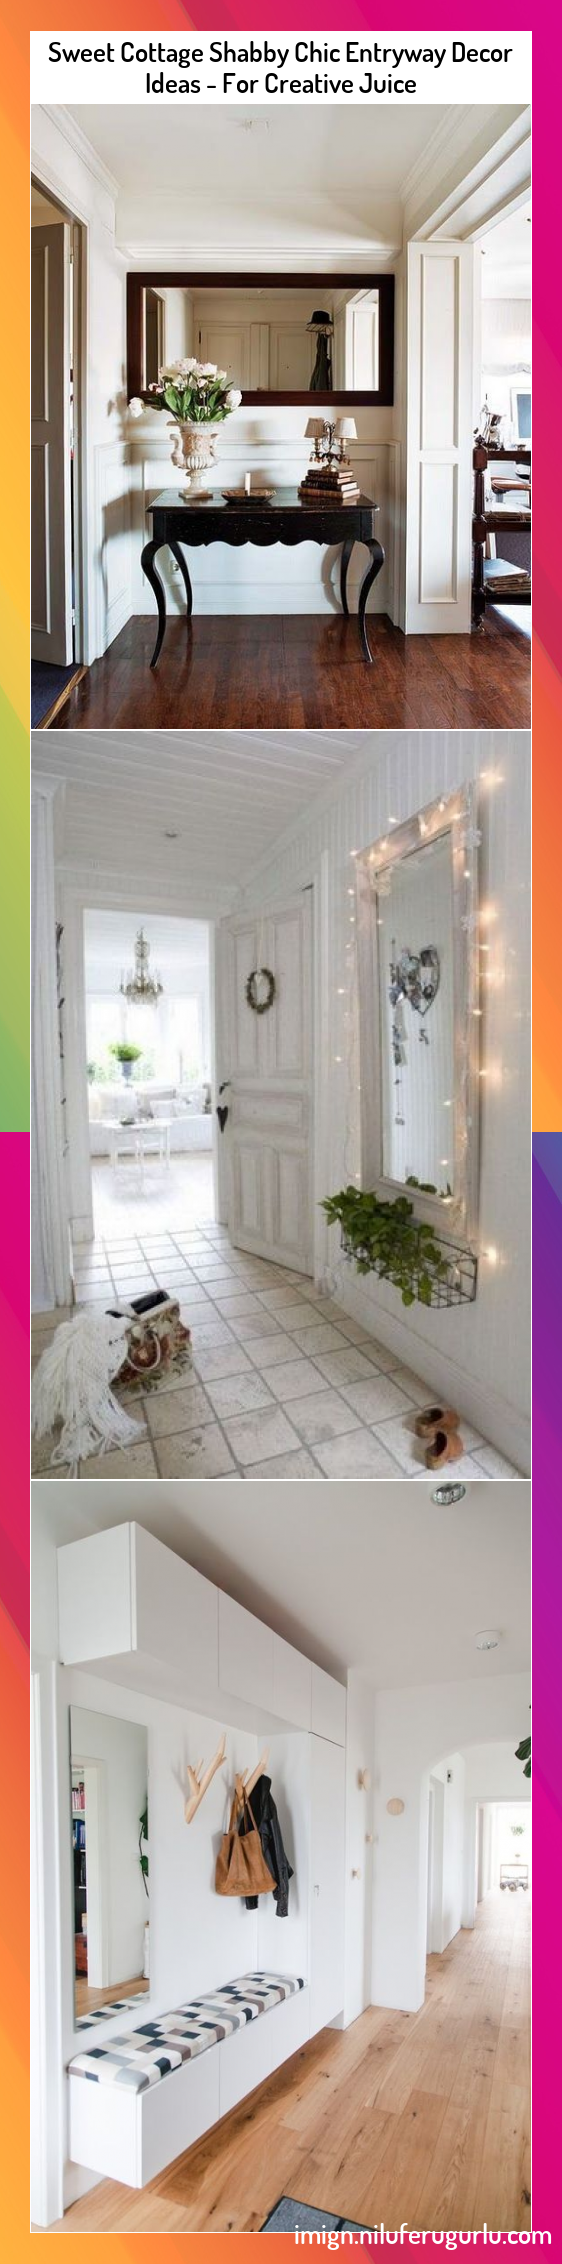 Sweet Cottage Shabby Chic Entryway Decor Ideas - For Creative Juice #Sweet #Cottage #Shabby #Chic #Entryway #Decor #Ideas #For #Creative #Juice